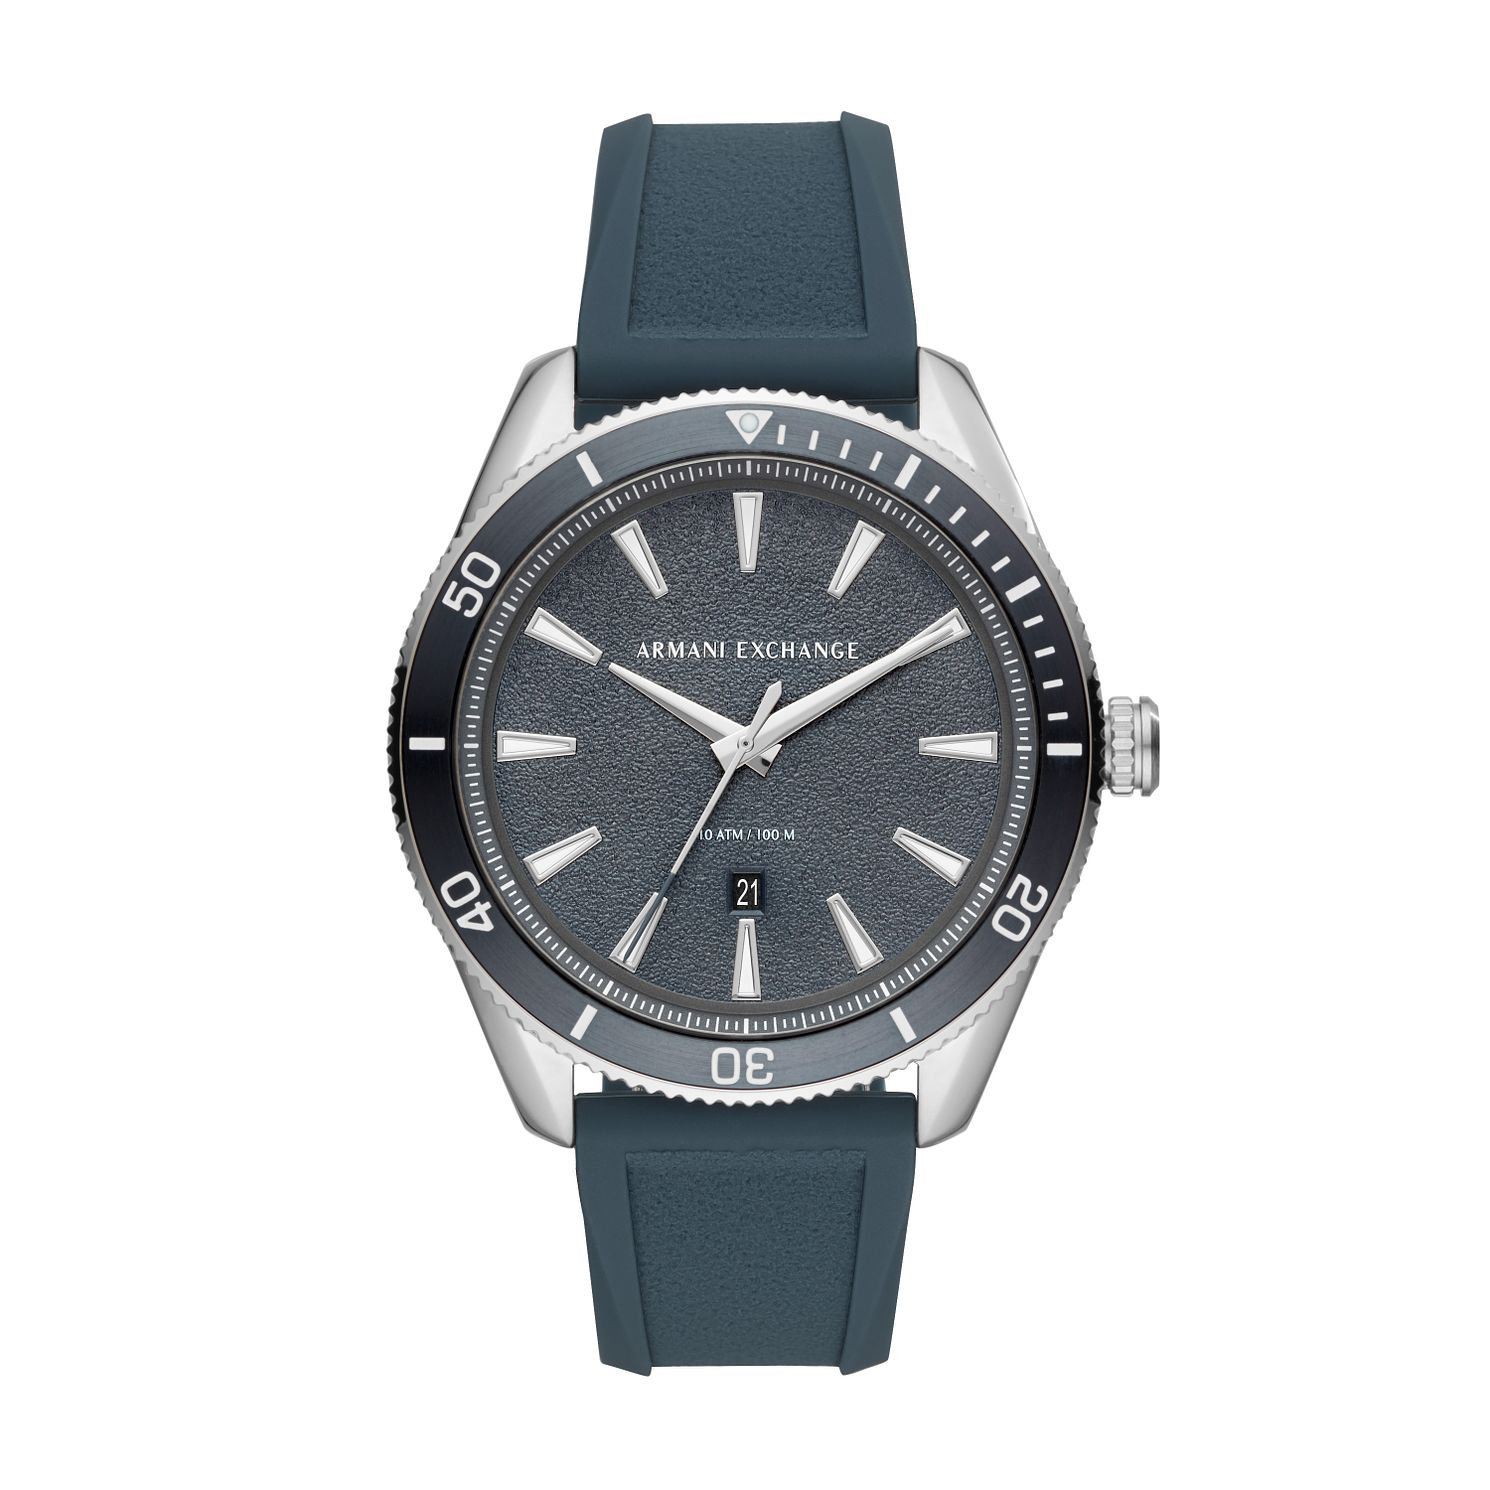 Armani Exchange Men's Blue Silicone Strap Watch - Product number 4012119